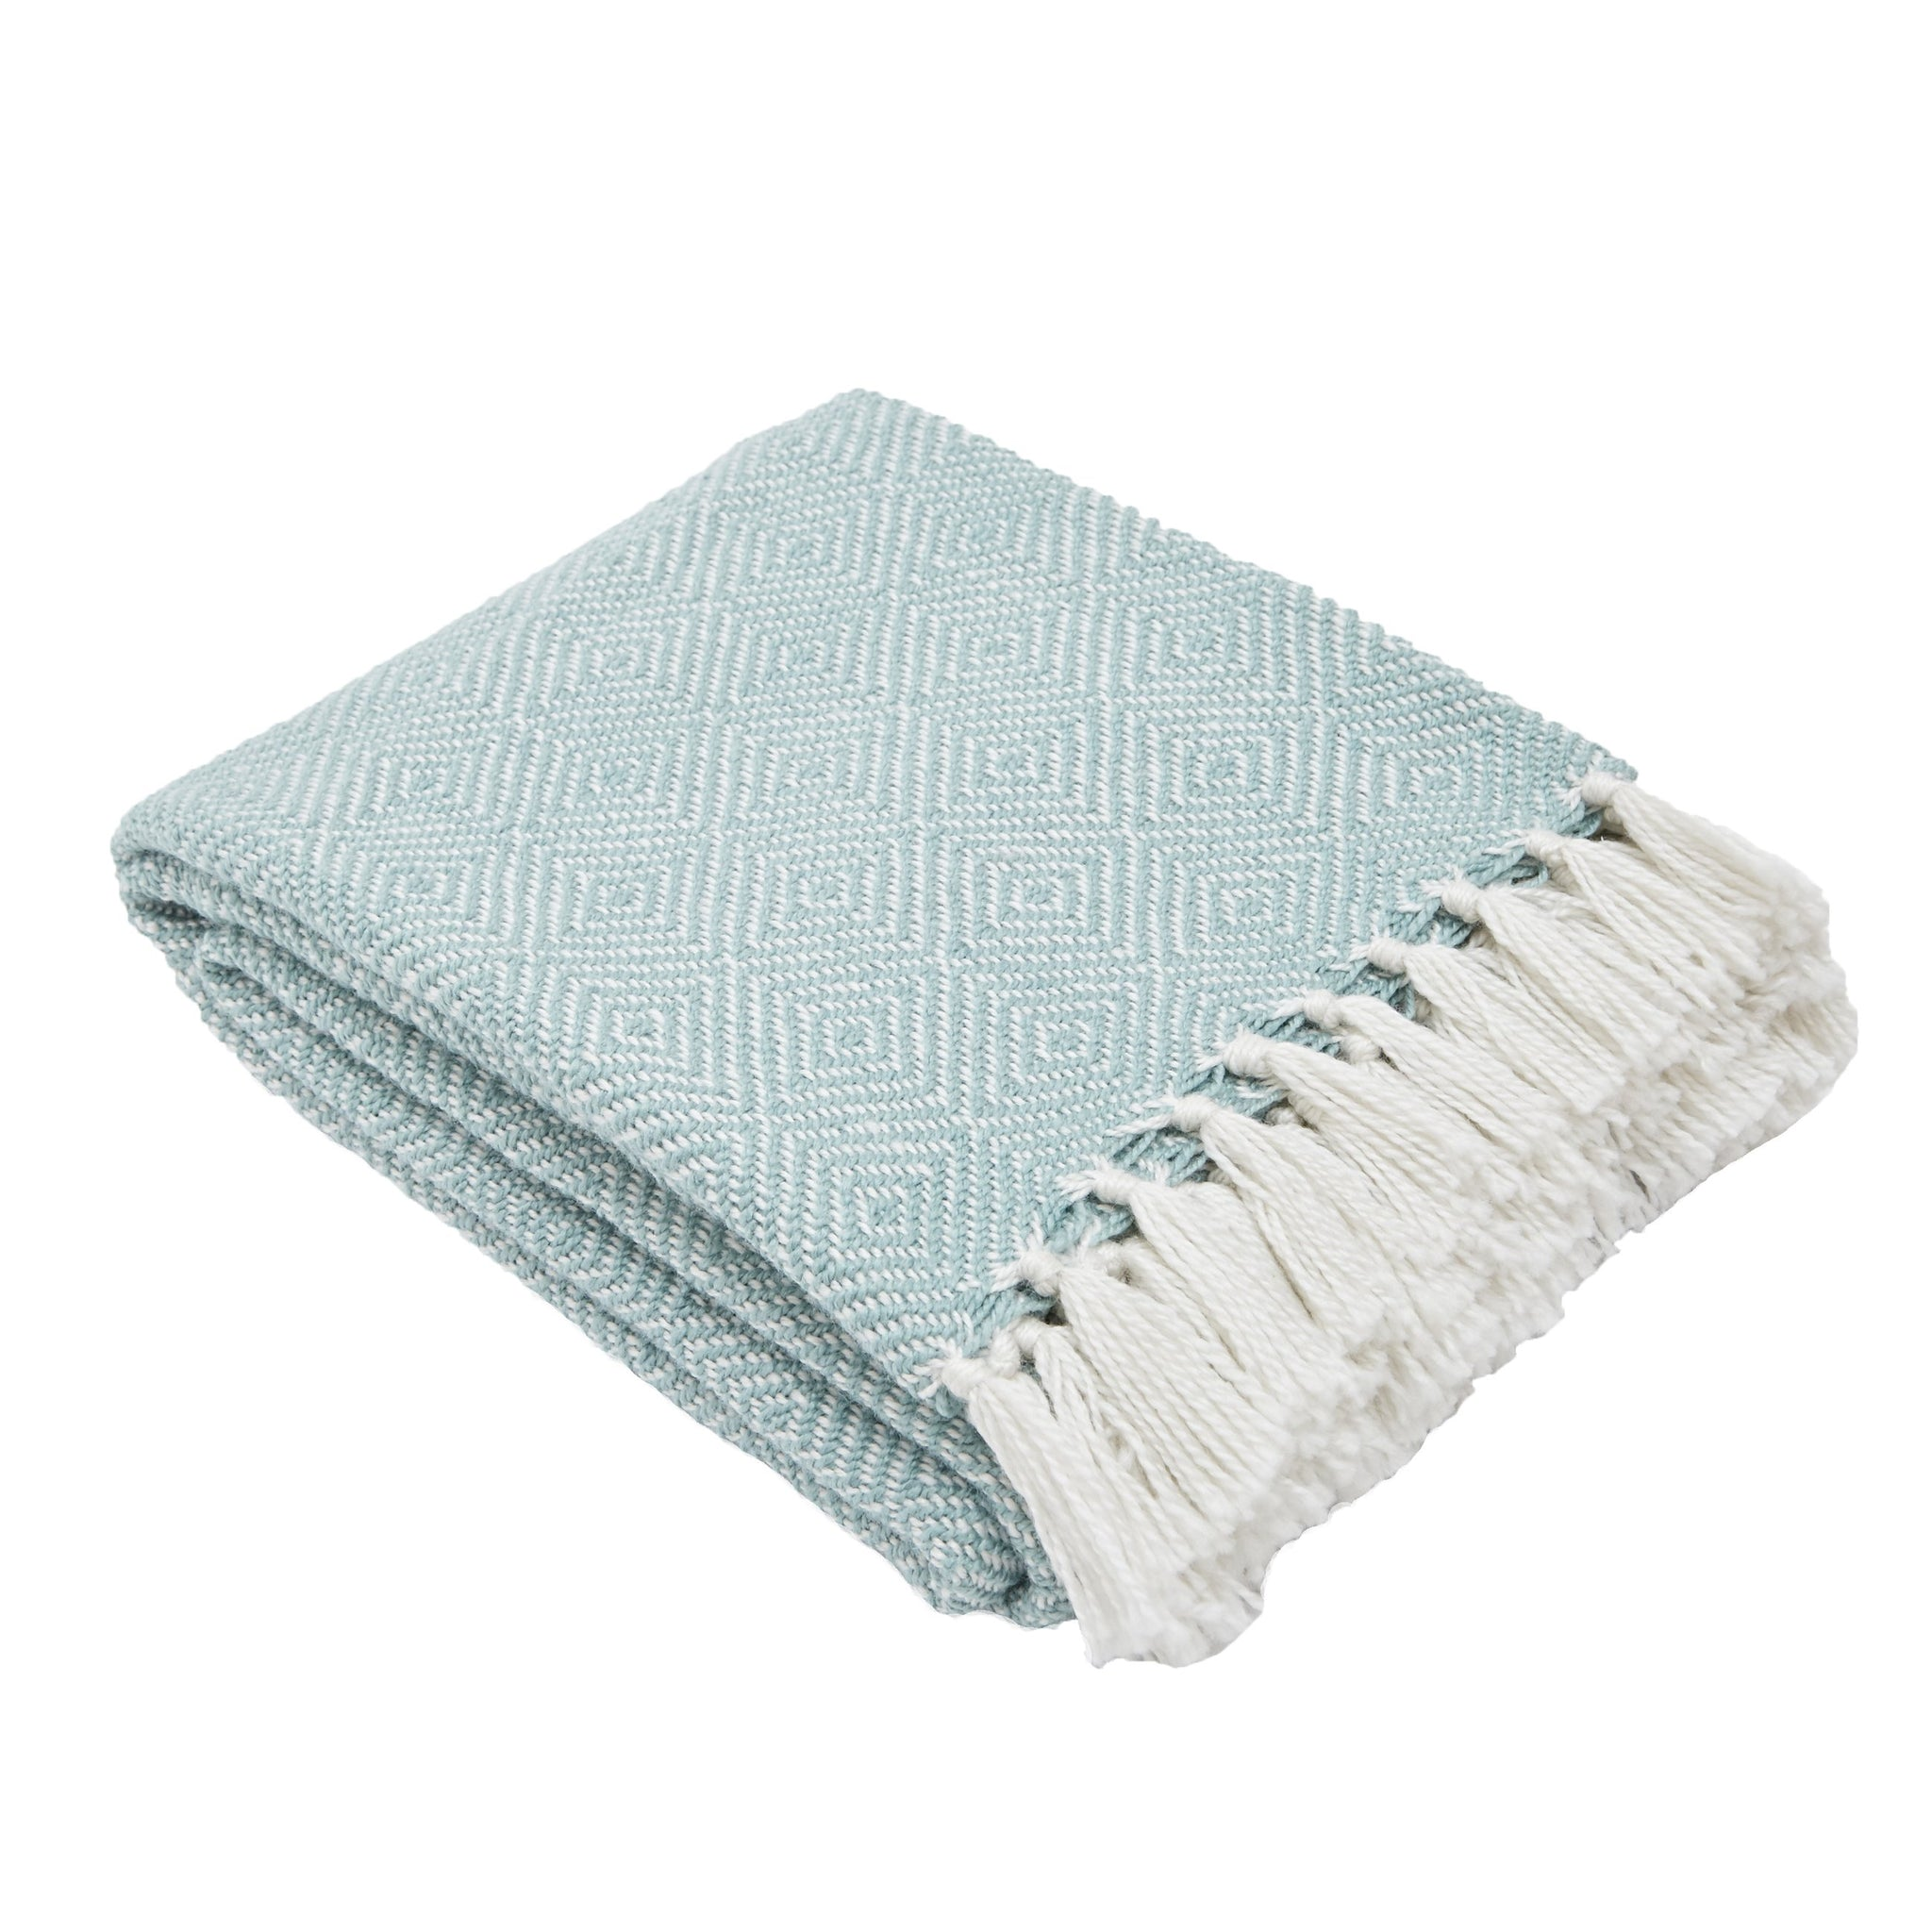 Weaver Green Diamond Blanket Throw Teal